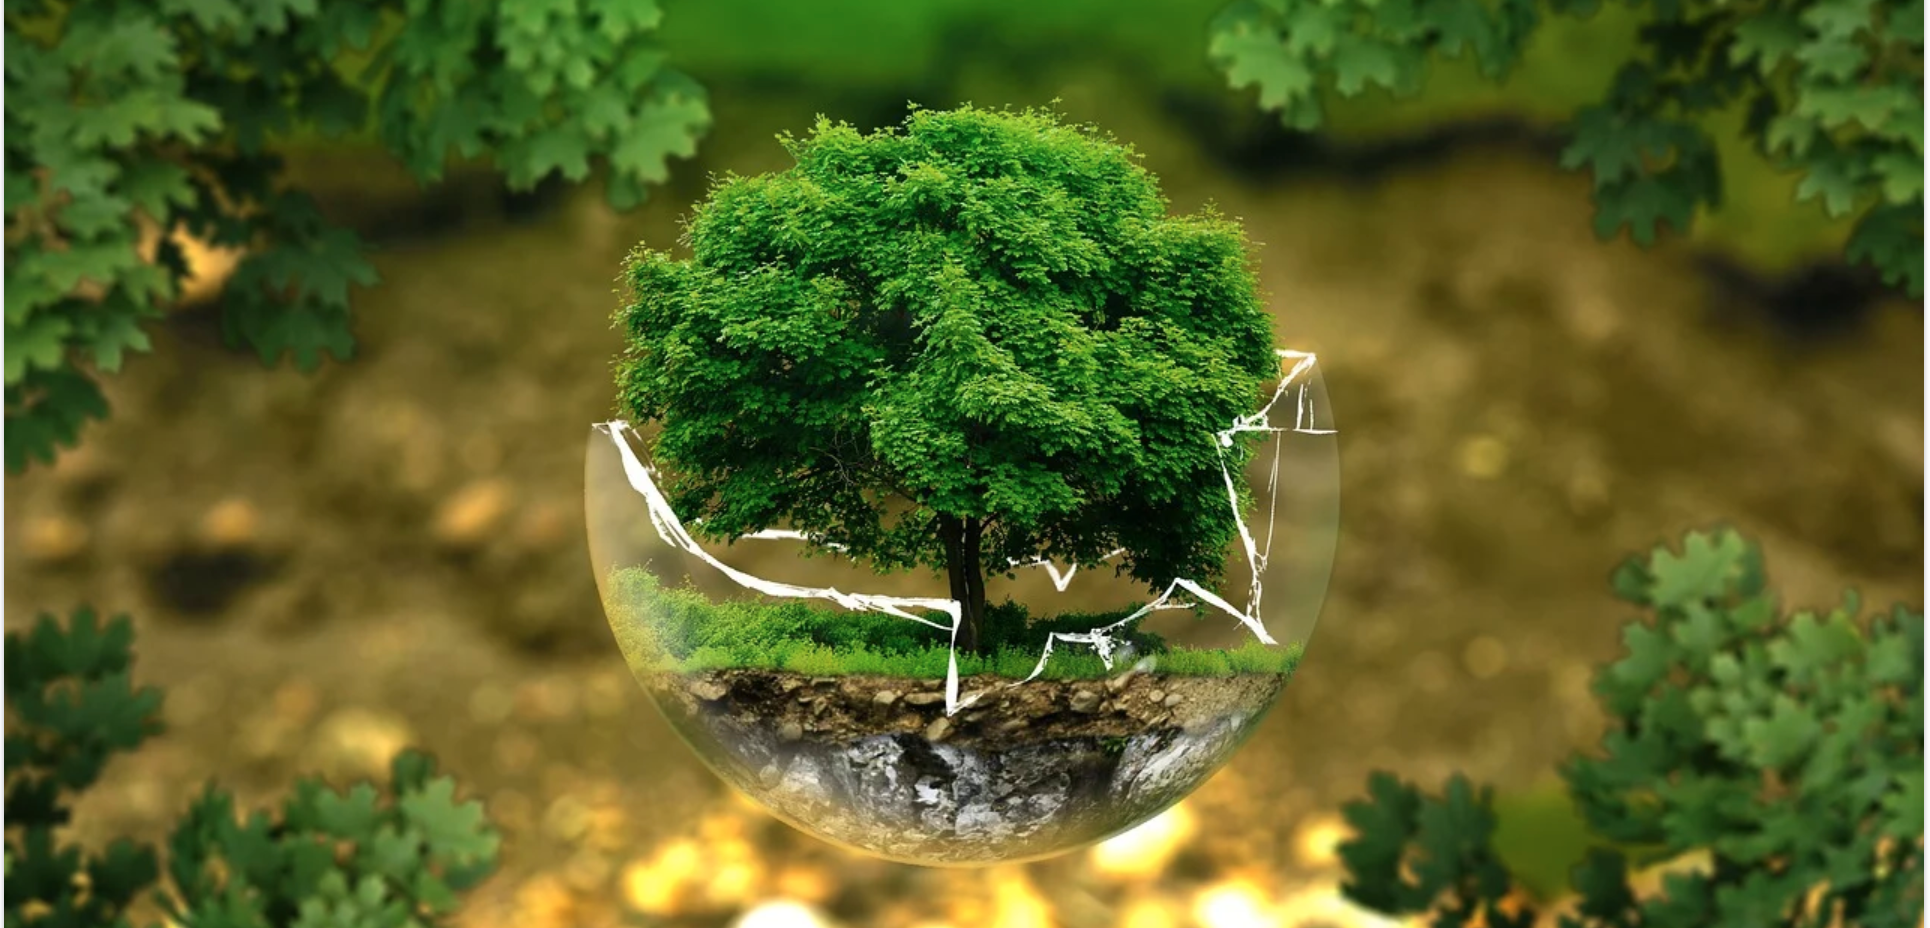 Above: For over the last two years UKG has been looking at ways of improving its environmental credentials across its business.